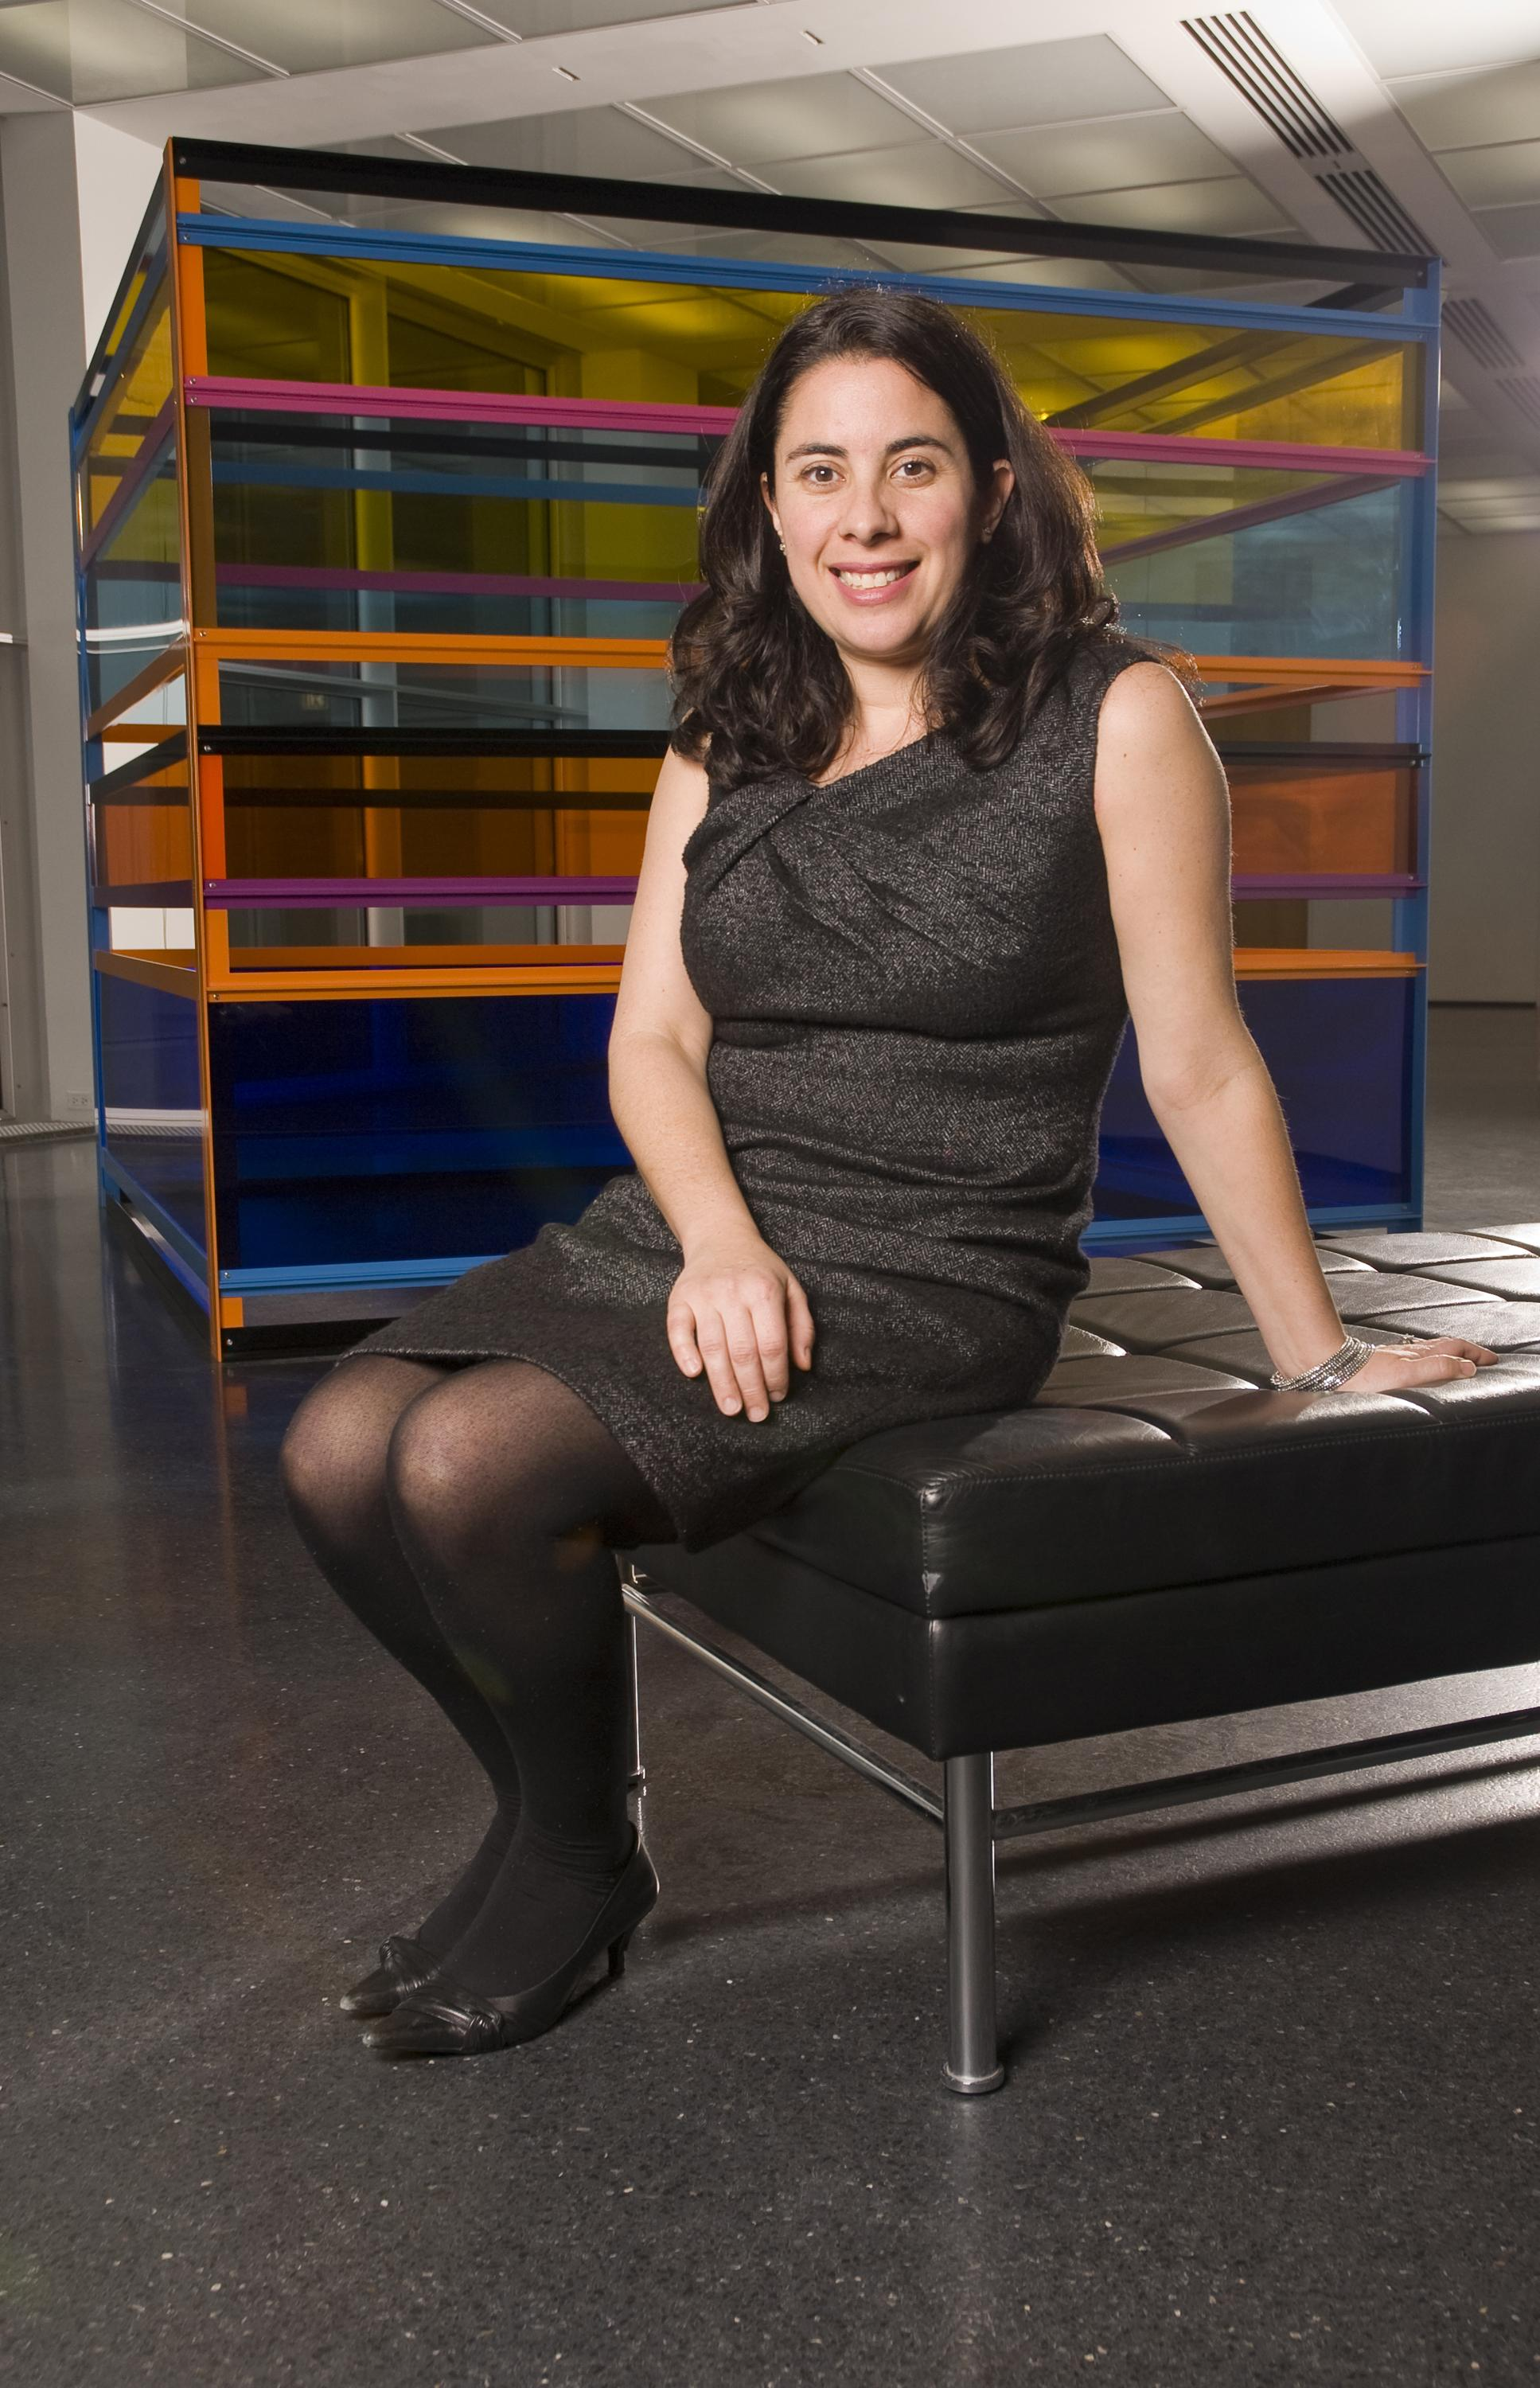 A woman with brown eyes and long brown hair in loose curls, wears a dark grey dress and sits on a black bench in front of a transparent cube with horizontal blocks of color.